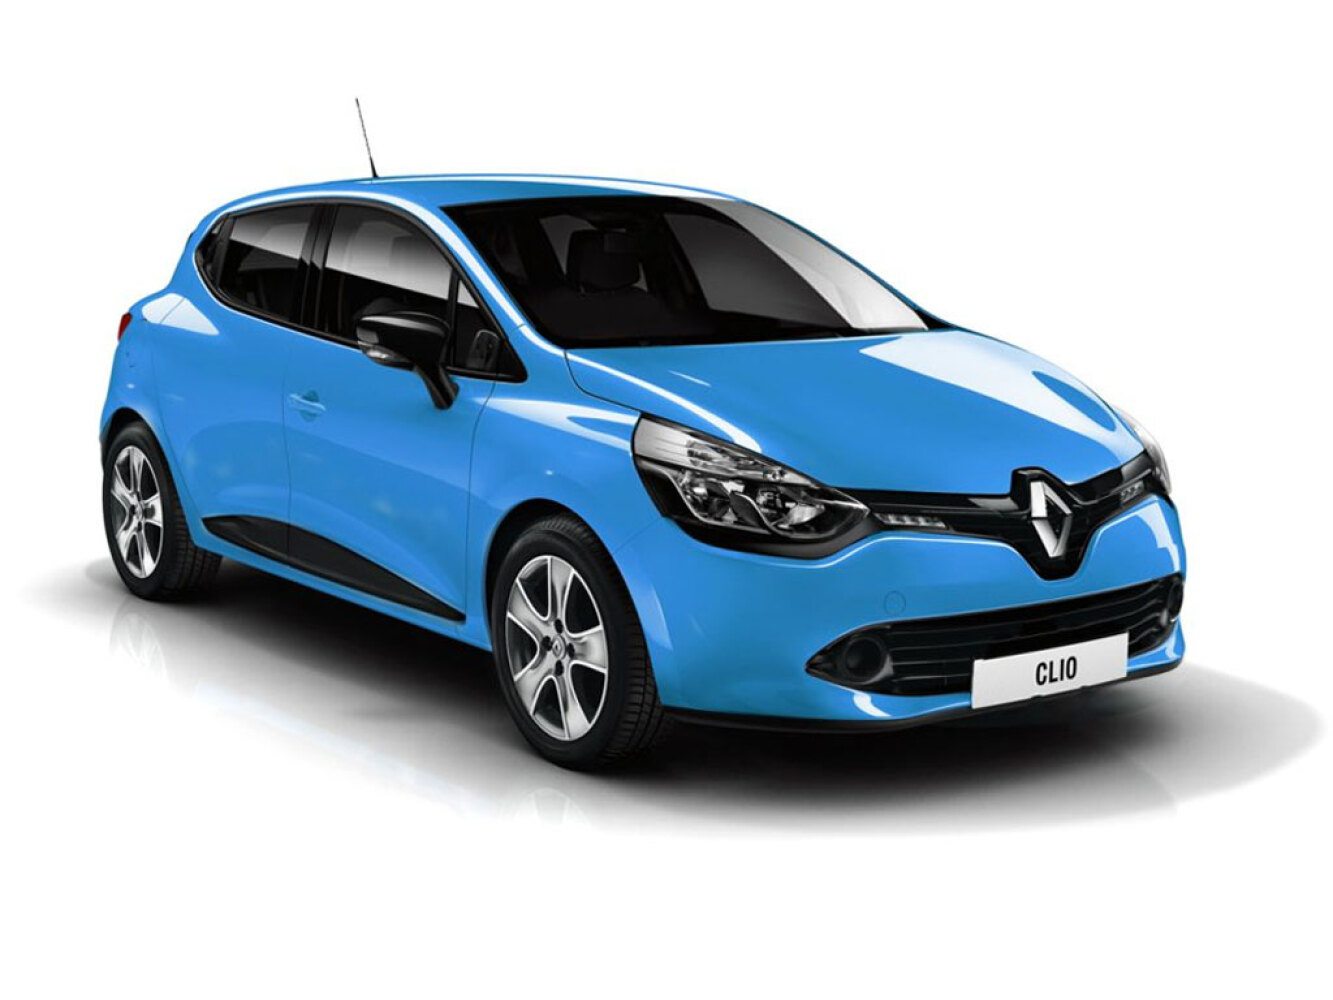 new renault clio 0 9 tce 90 play 5dr petrol hatchback for. Black Bedroom Furniture Sets. Home Design Ideas